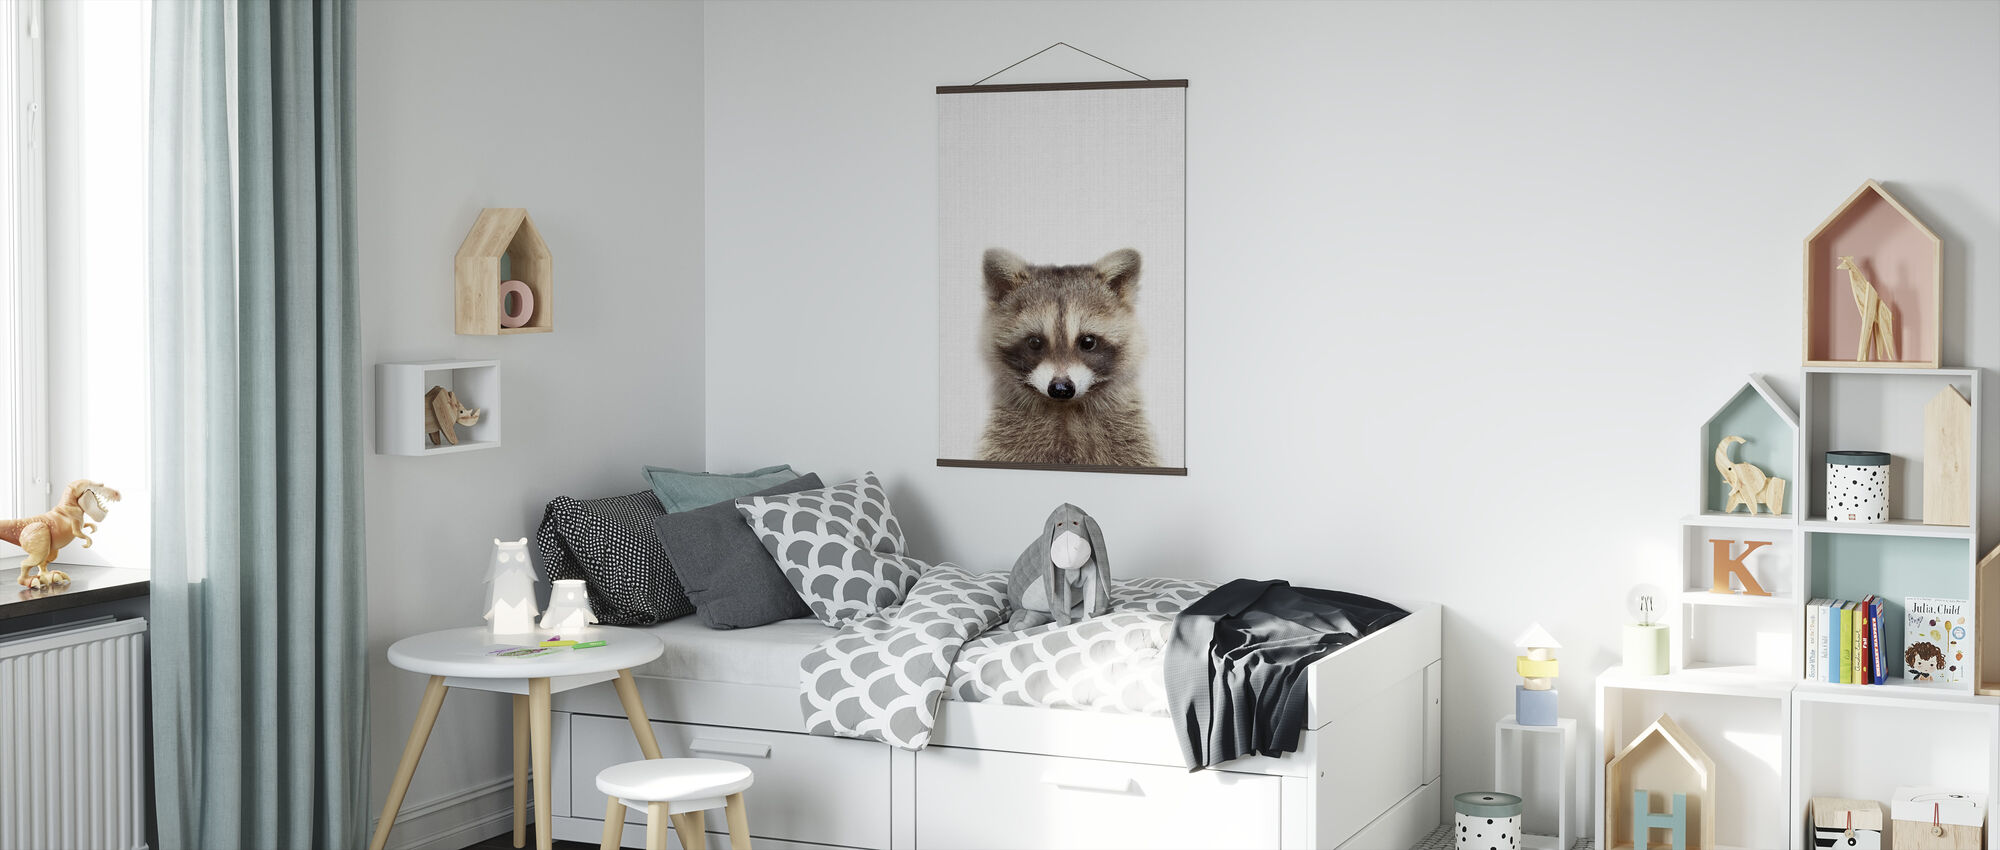 Raccoon - Poster - Kids Room